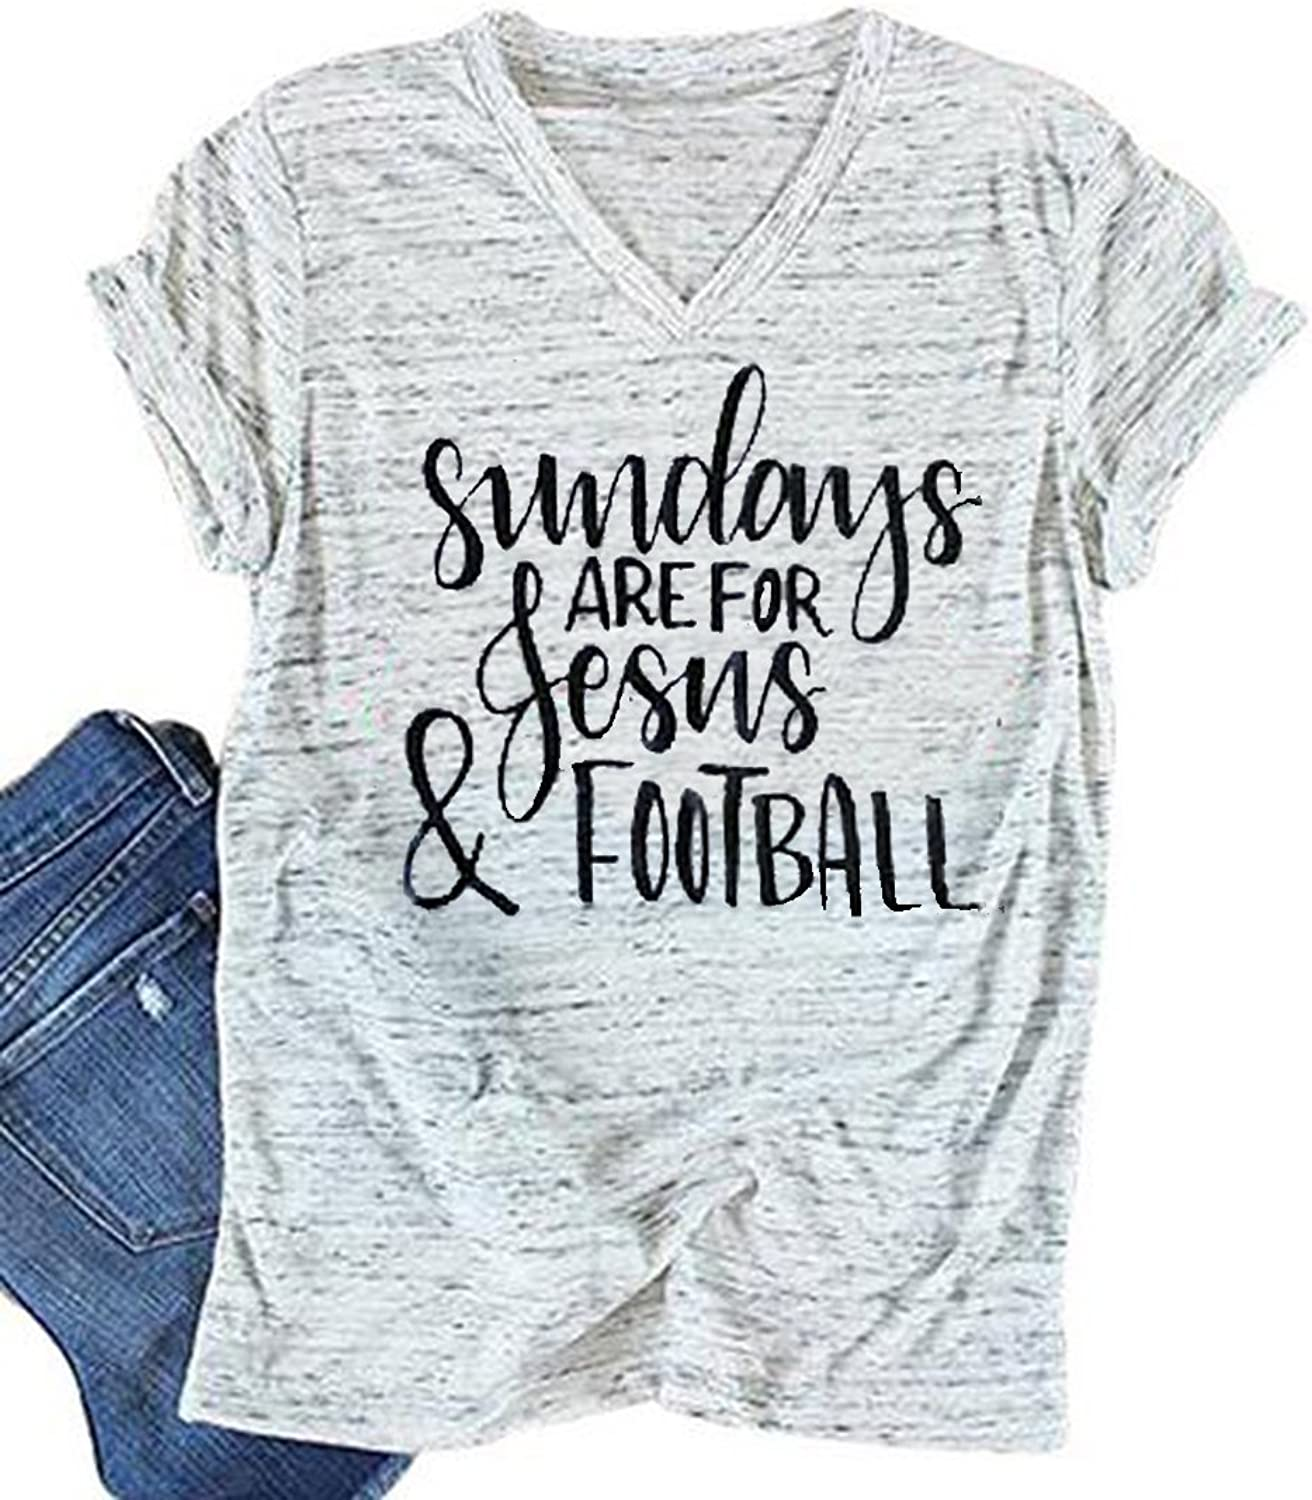 MAXIMGR Women's Sundays are for Jesus Football TShirt Funny Letters Print VNeck Short Sleeve Summer Top Tees